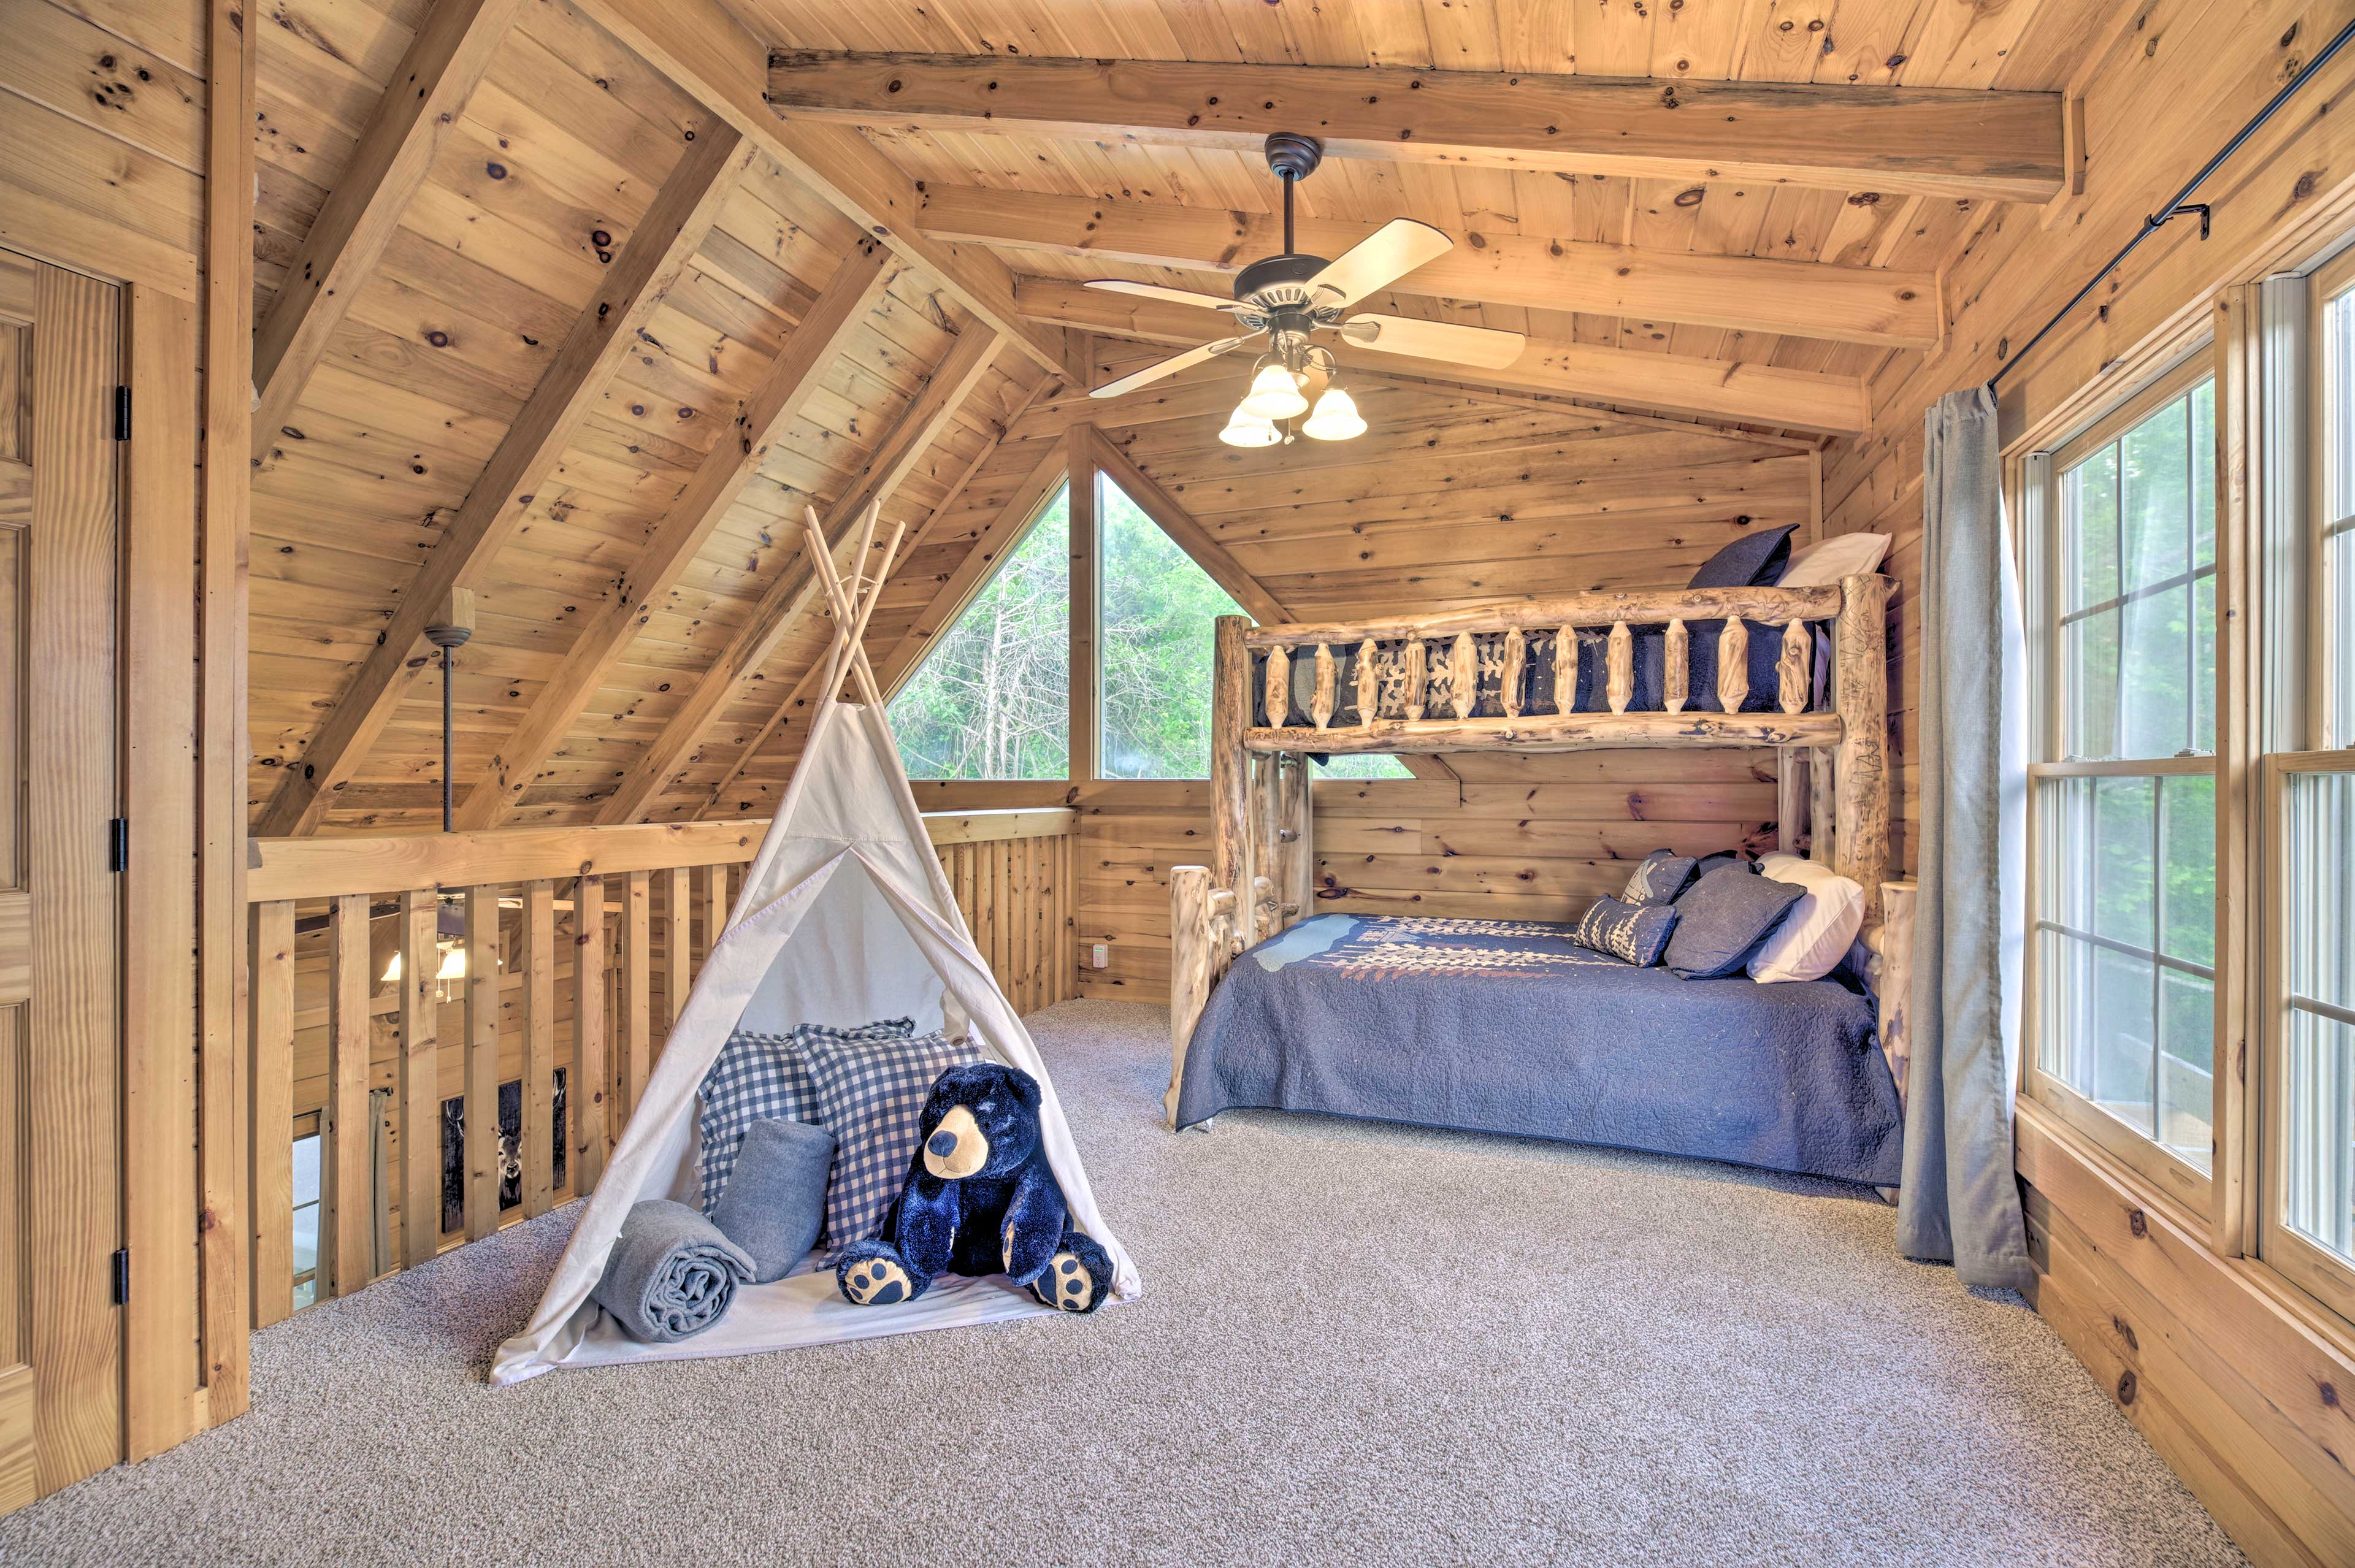 The kiddos will love the lofted space!